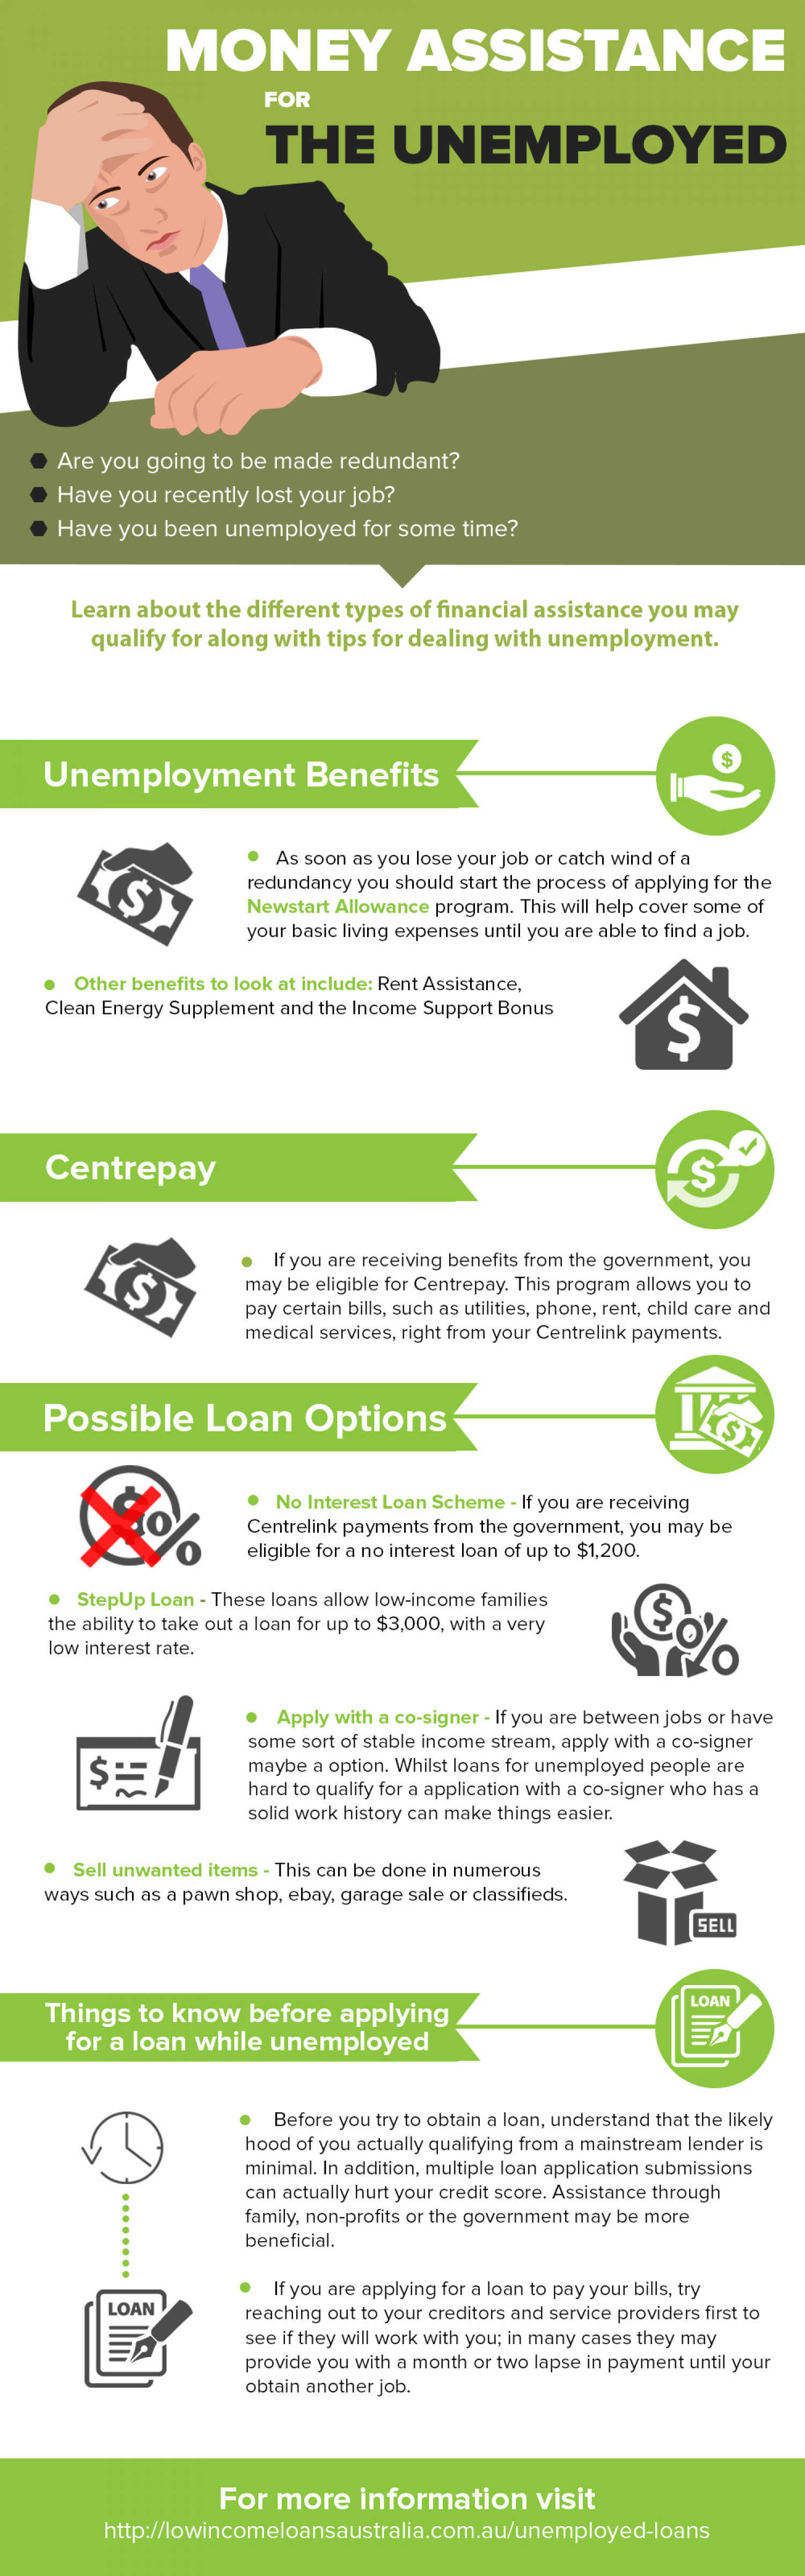 Money Assistance for the Unemployed Infographic